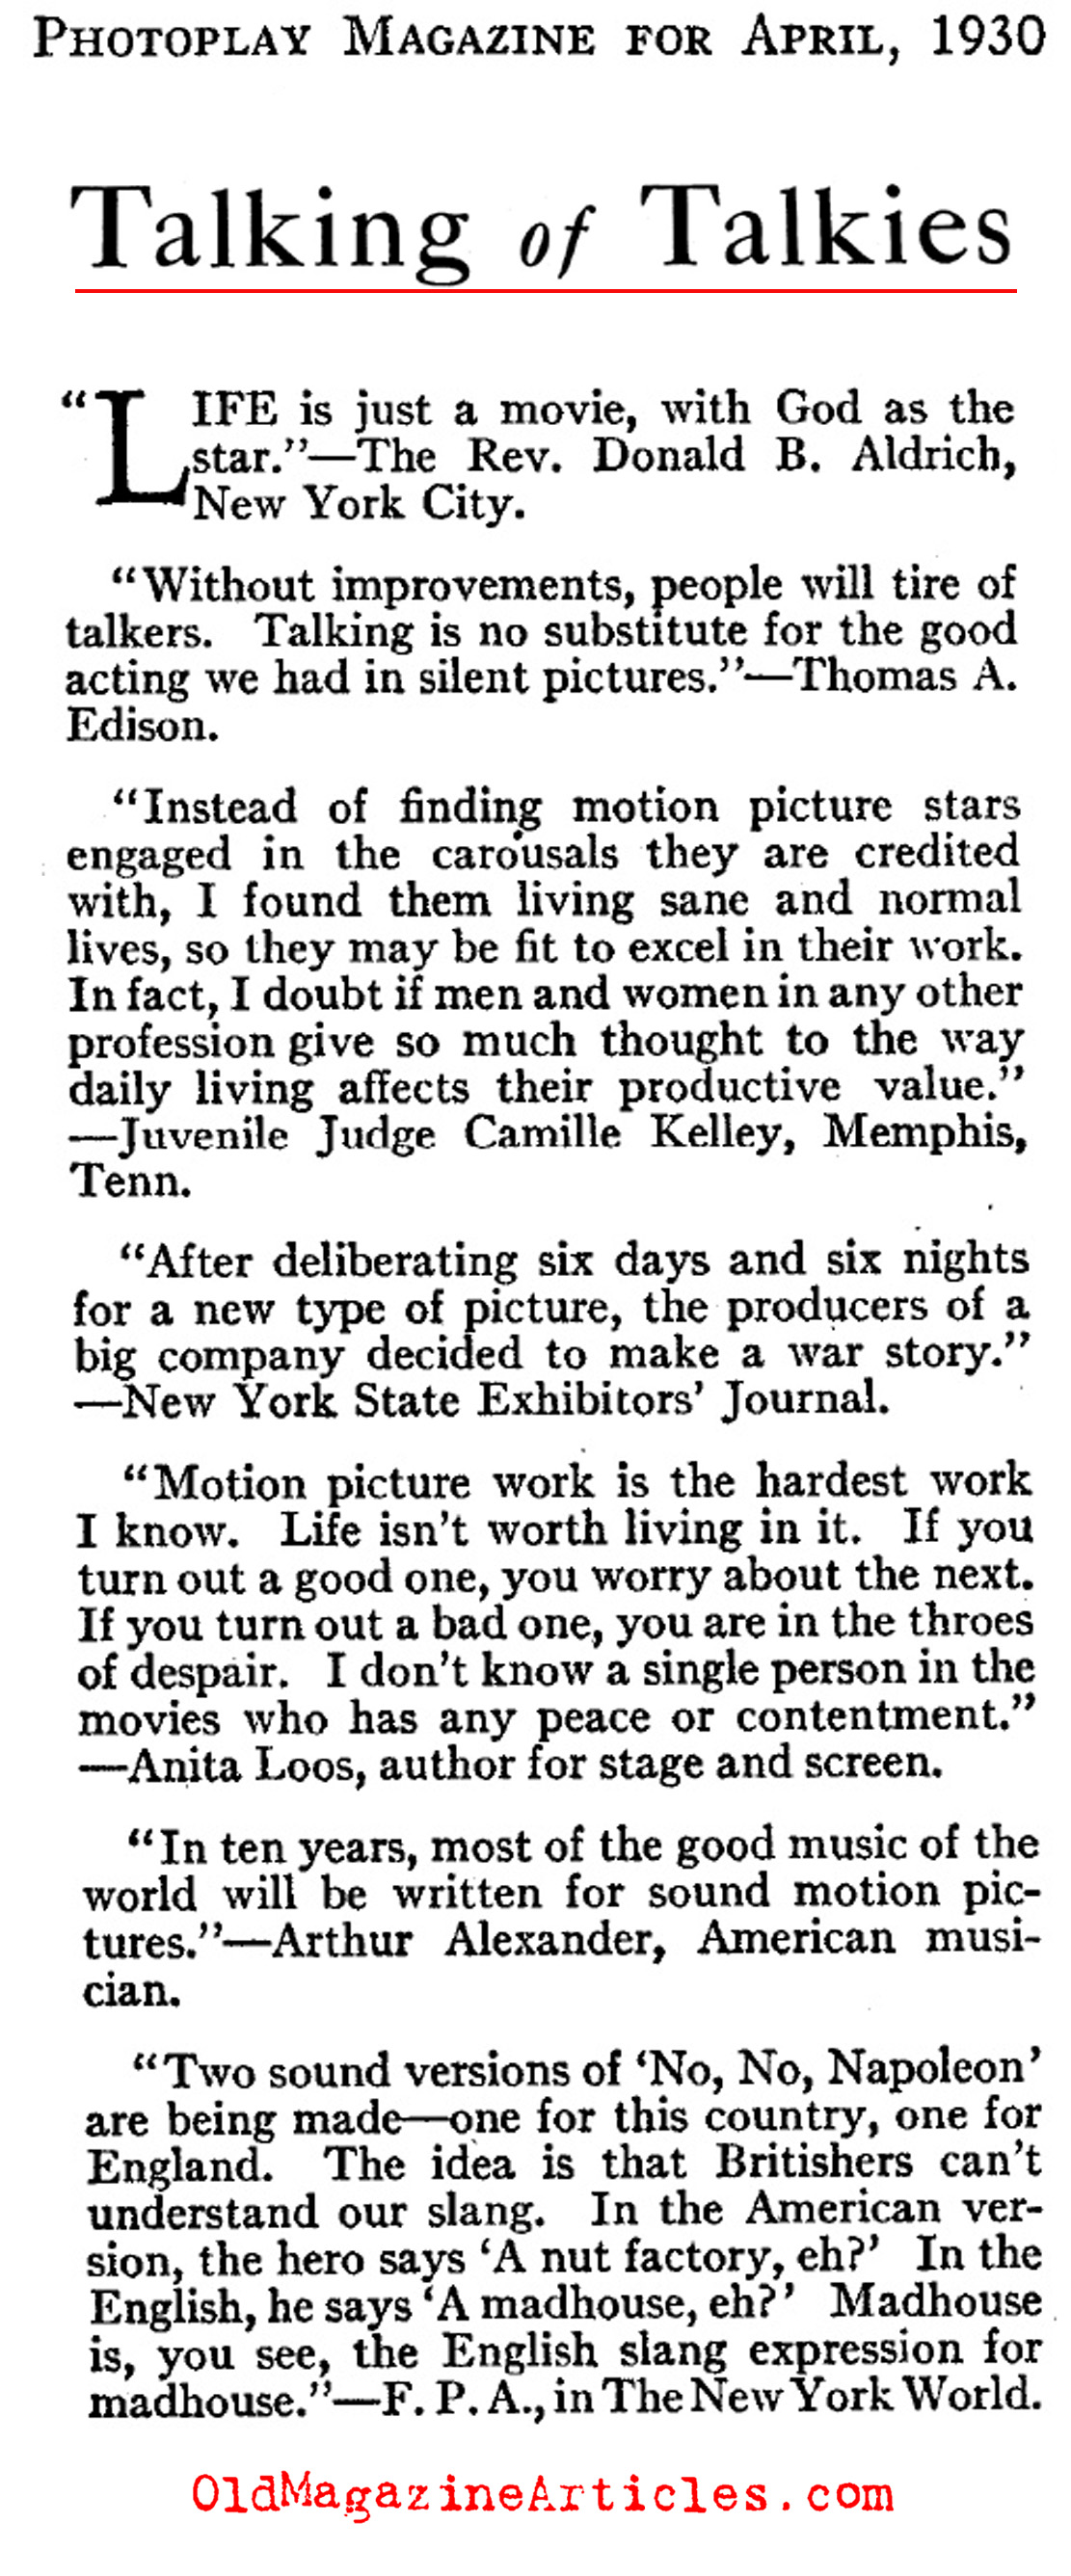 Various Remarks About the First Talkies (Photoplay Magazine, 1930)